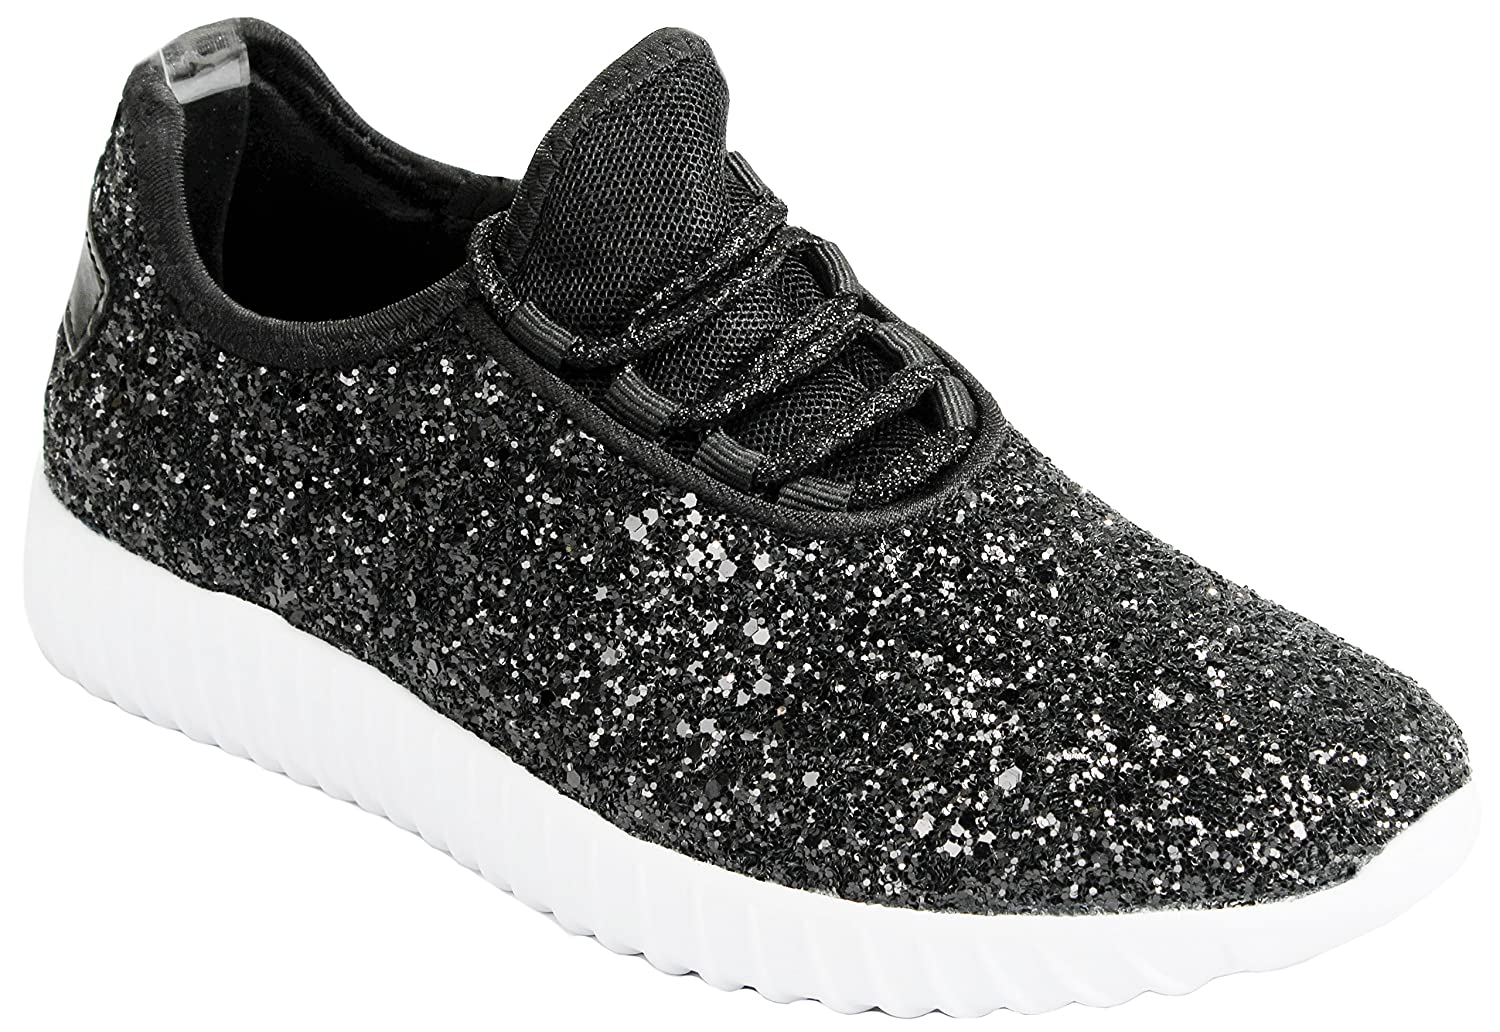 JKNY Kids Girls Fashion Metallic Sequins Glitter Lace up Light Weight  Stylish Sneaker Shoes